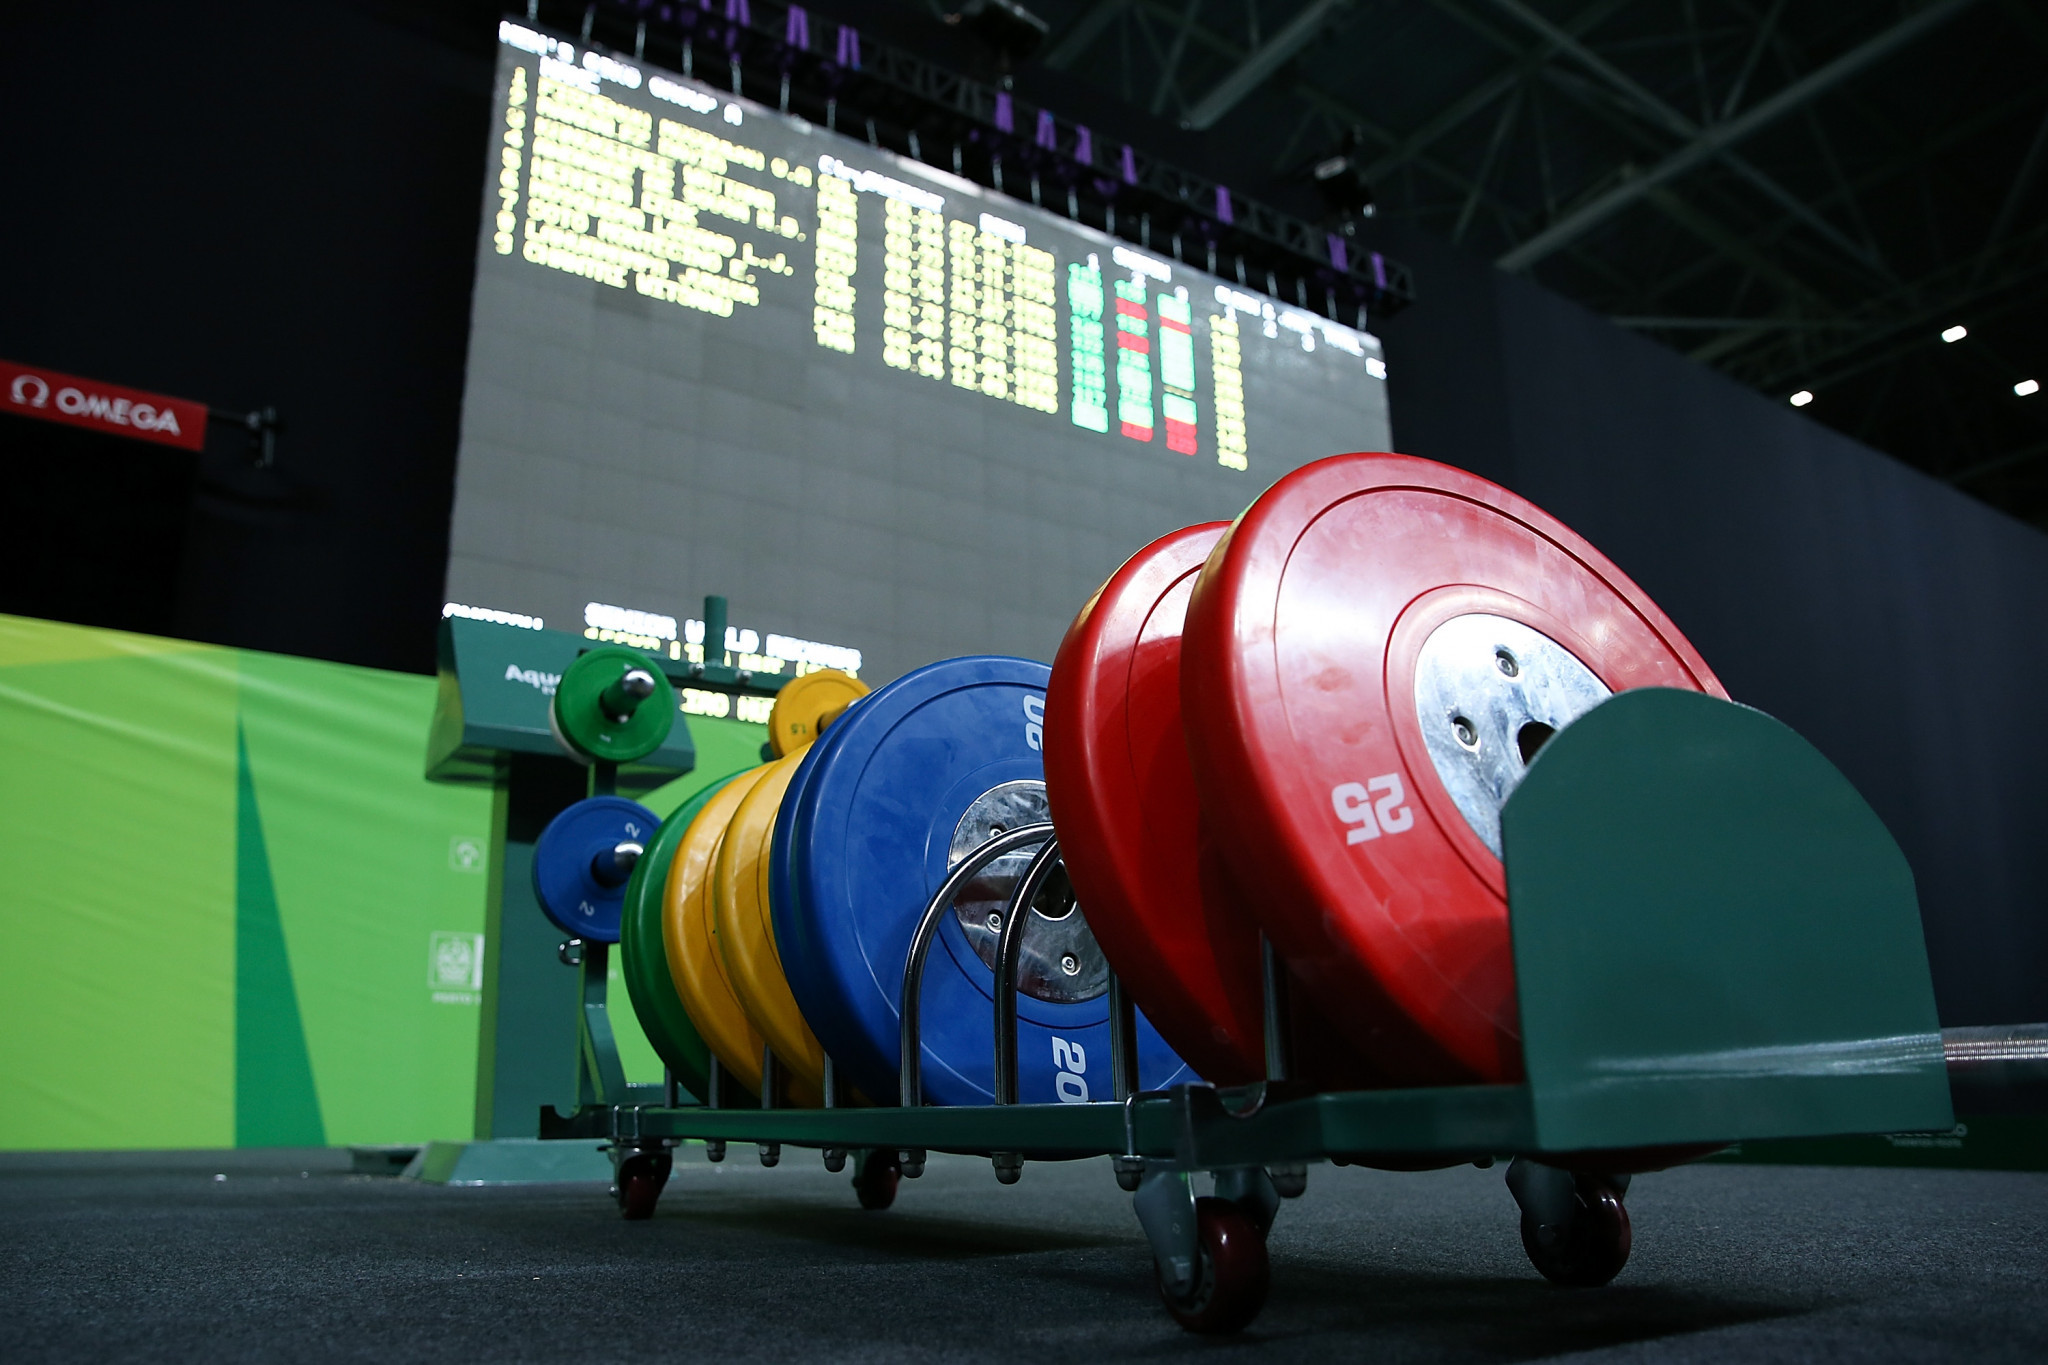 Weightlifting has been restored to the Olympic schedule for the foreseeable future ©Getty Images